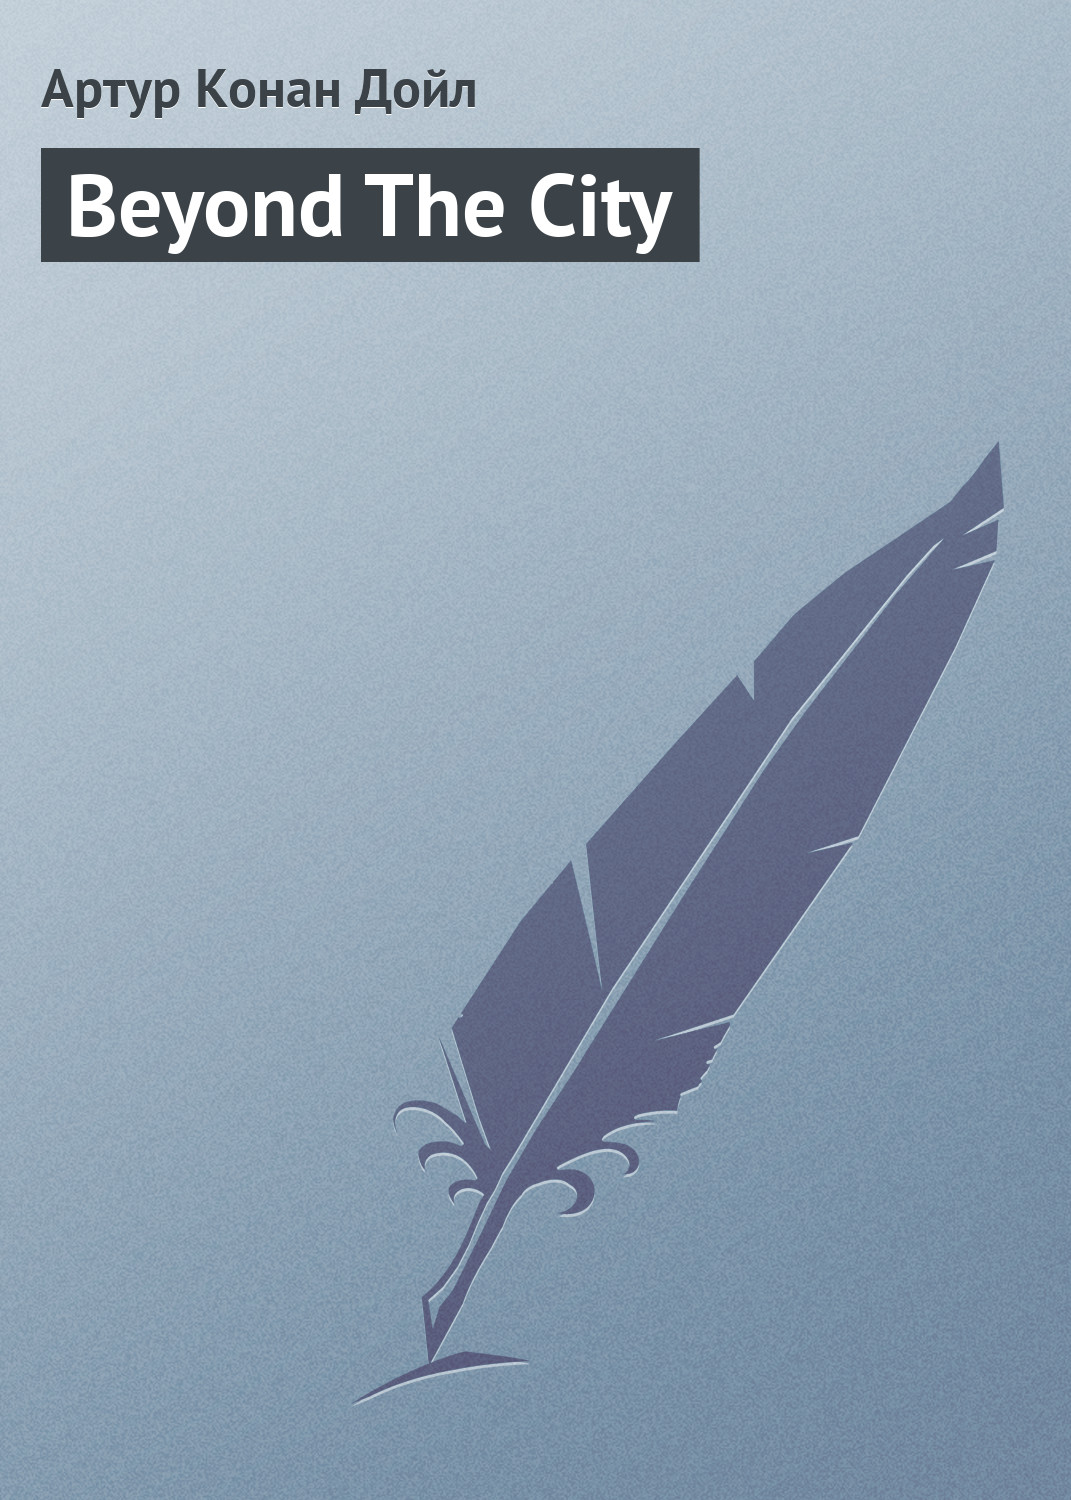 Артур Конан Дойл Beyond The City city the